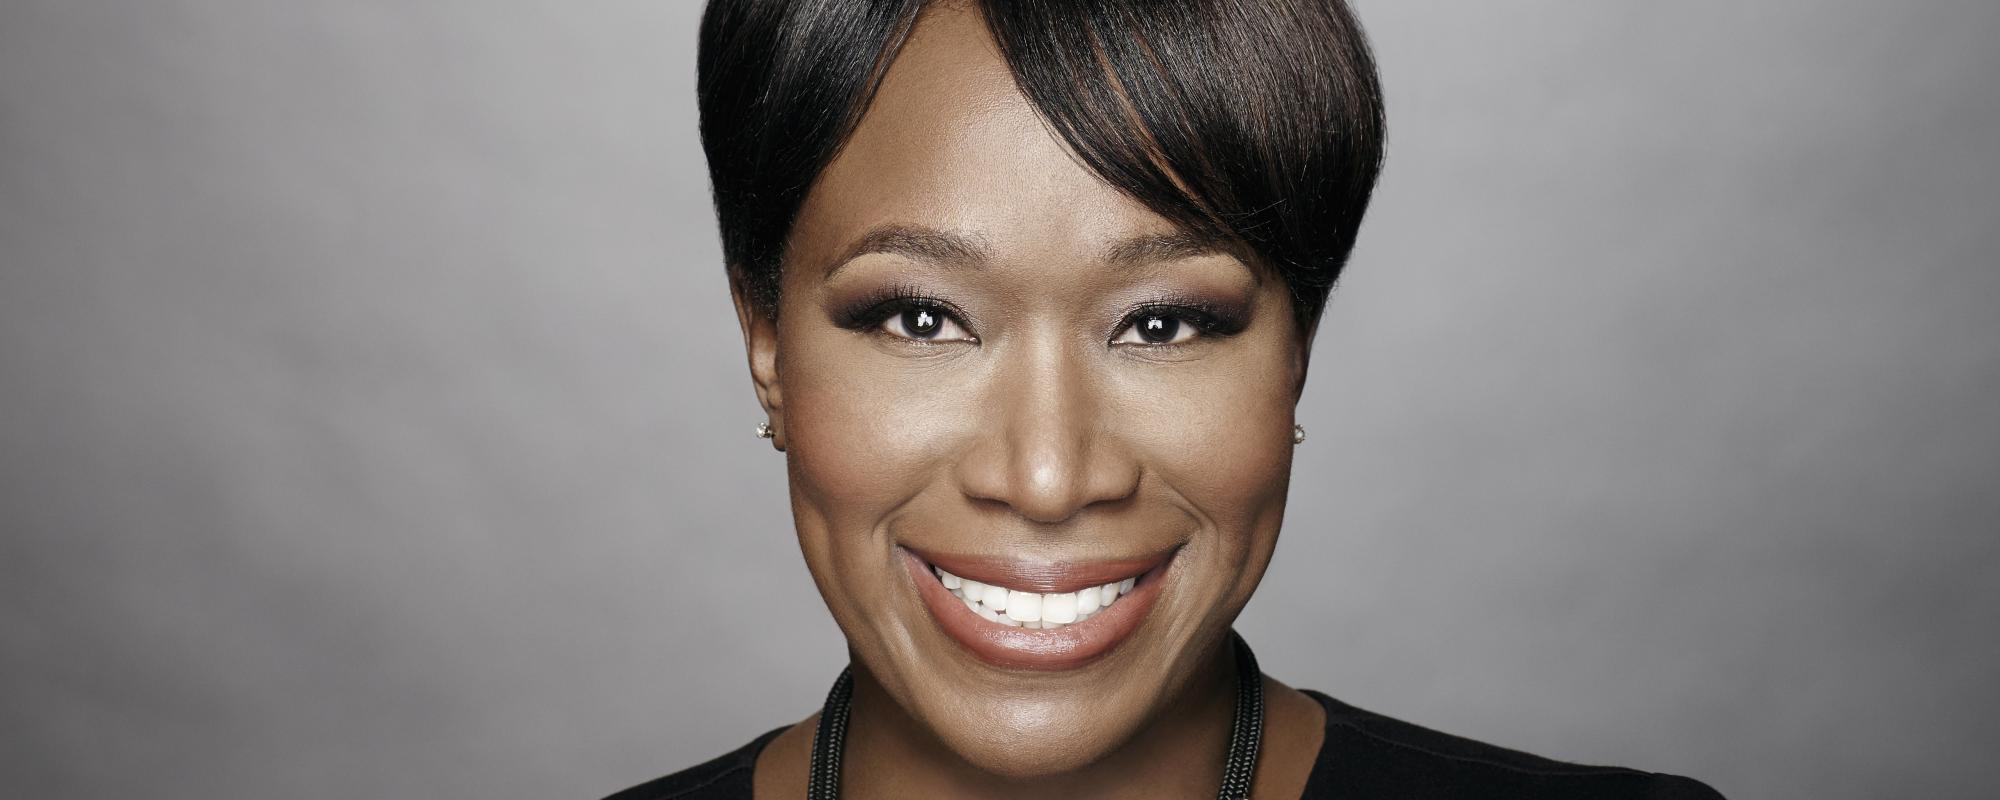 Joy Reid facing camera, smiling.